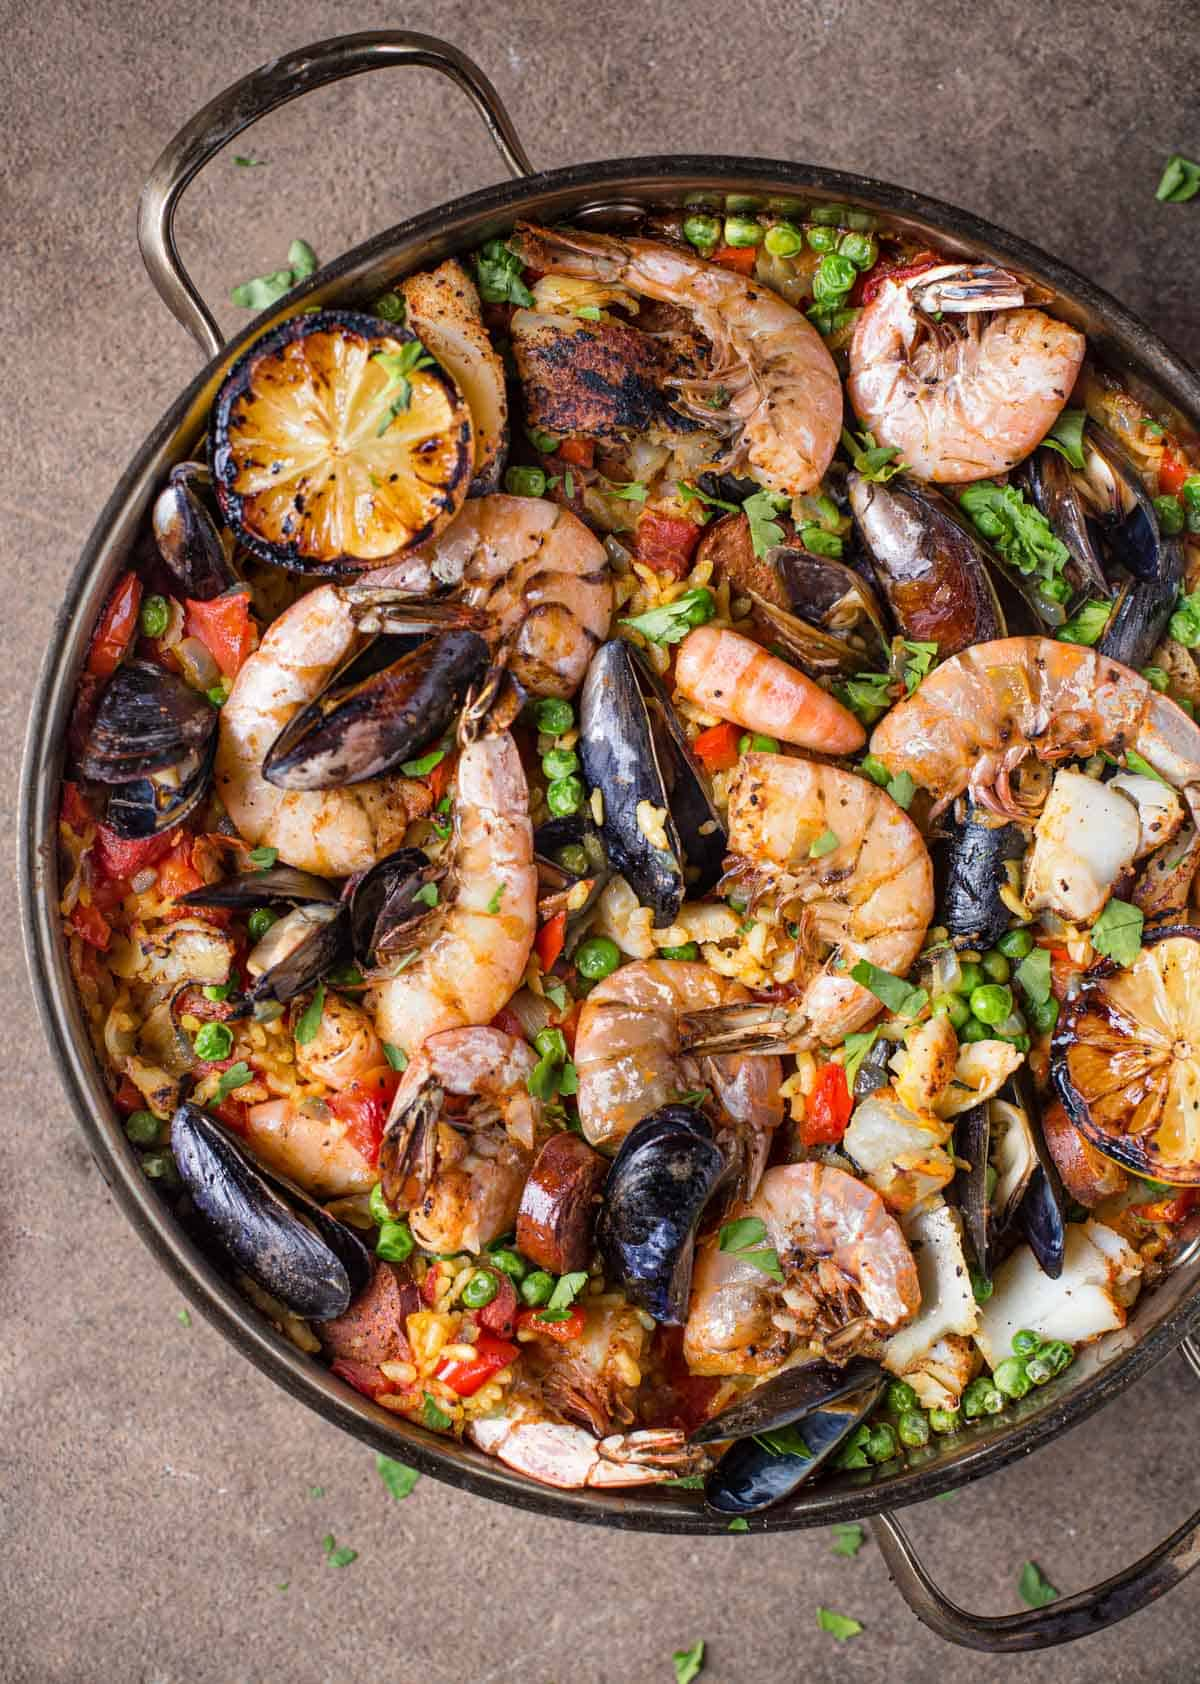 A large pan filled with seafood paella